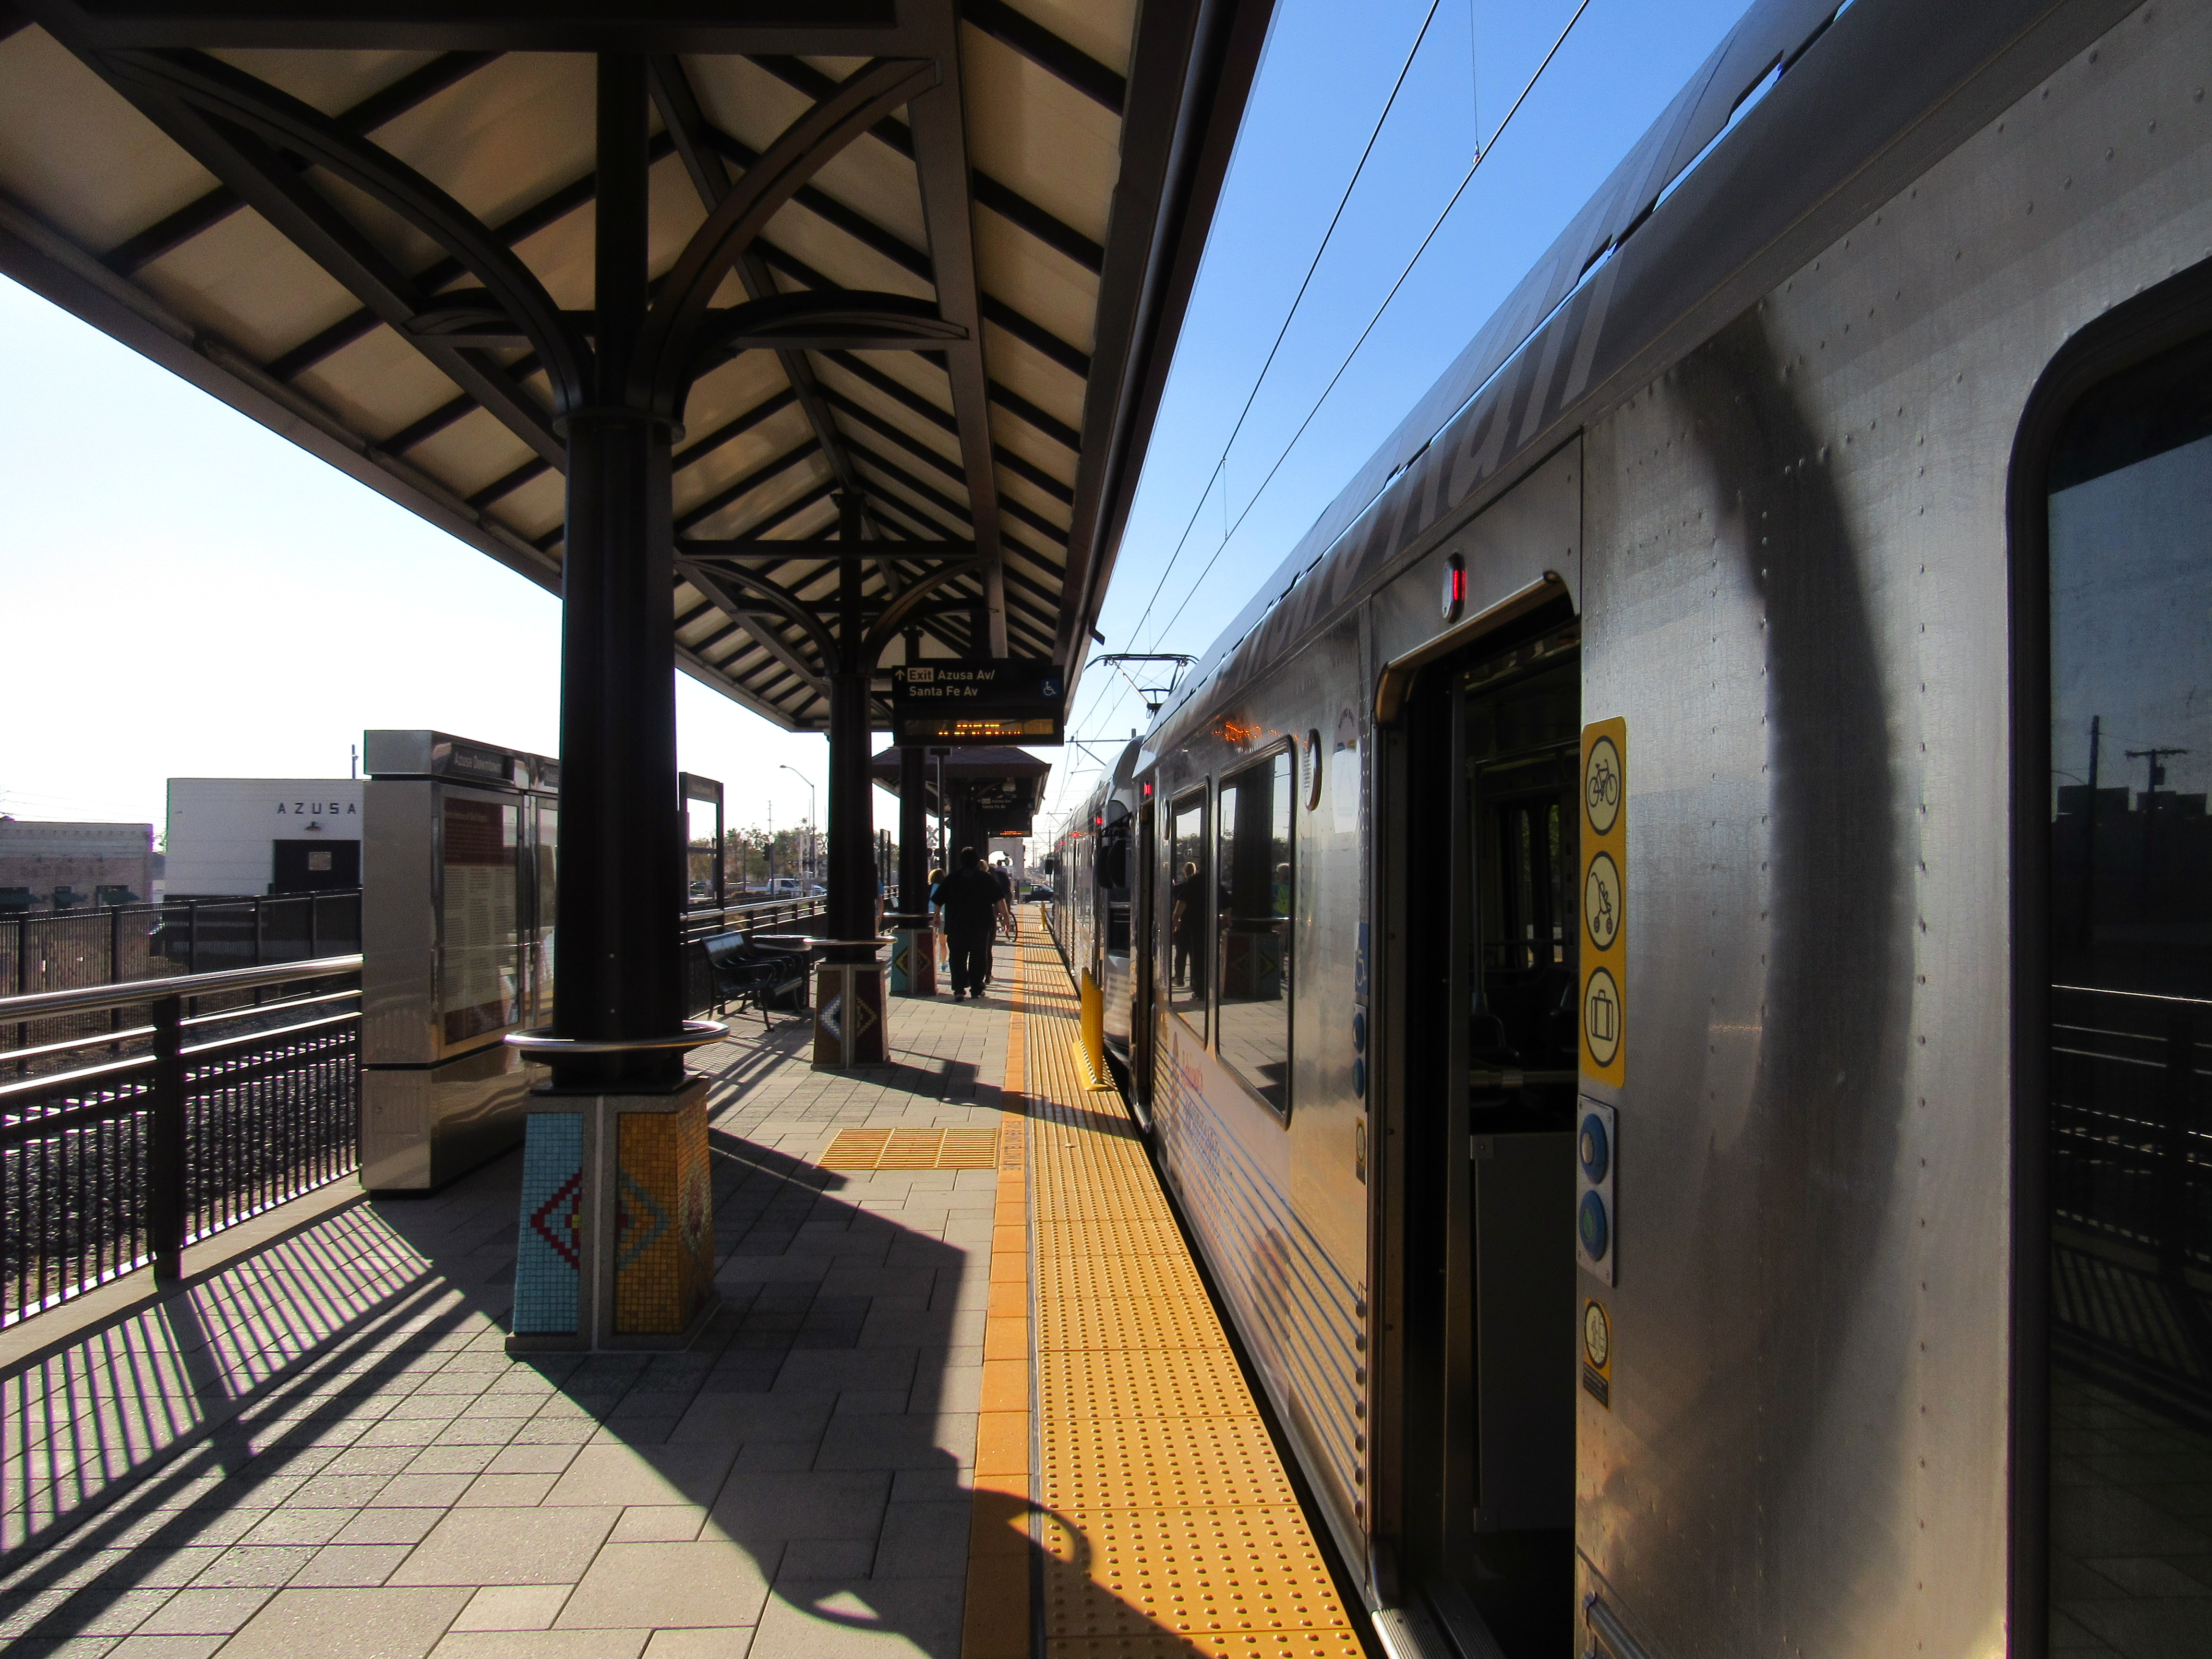 A silver train at a platform with doors open